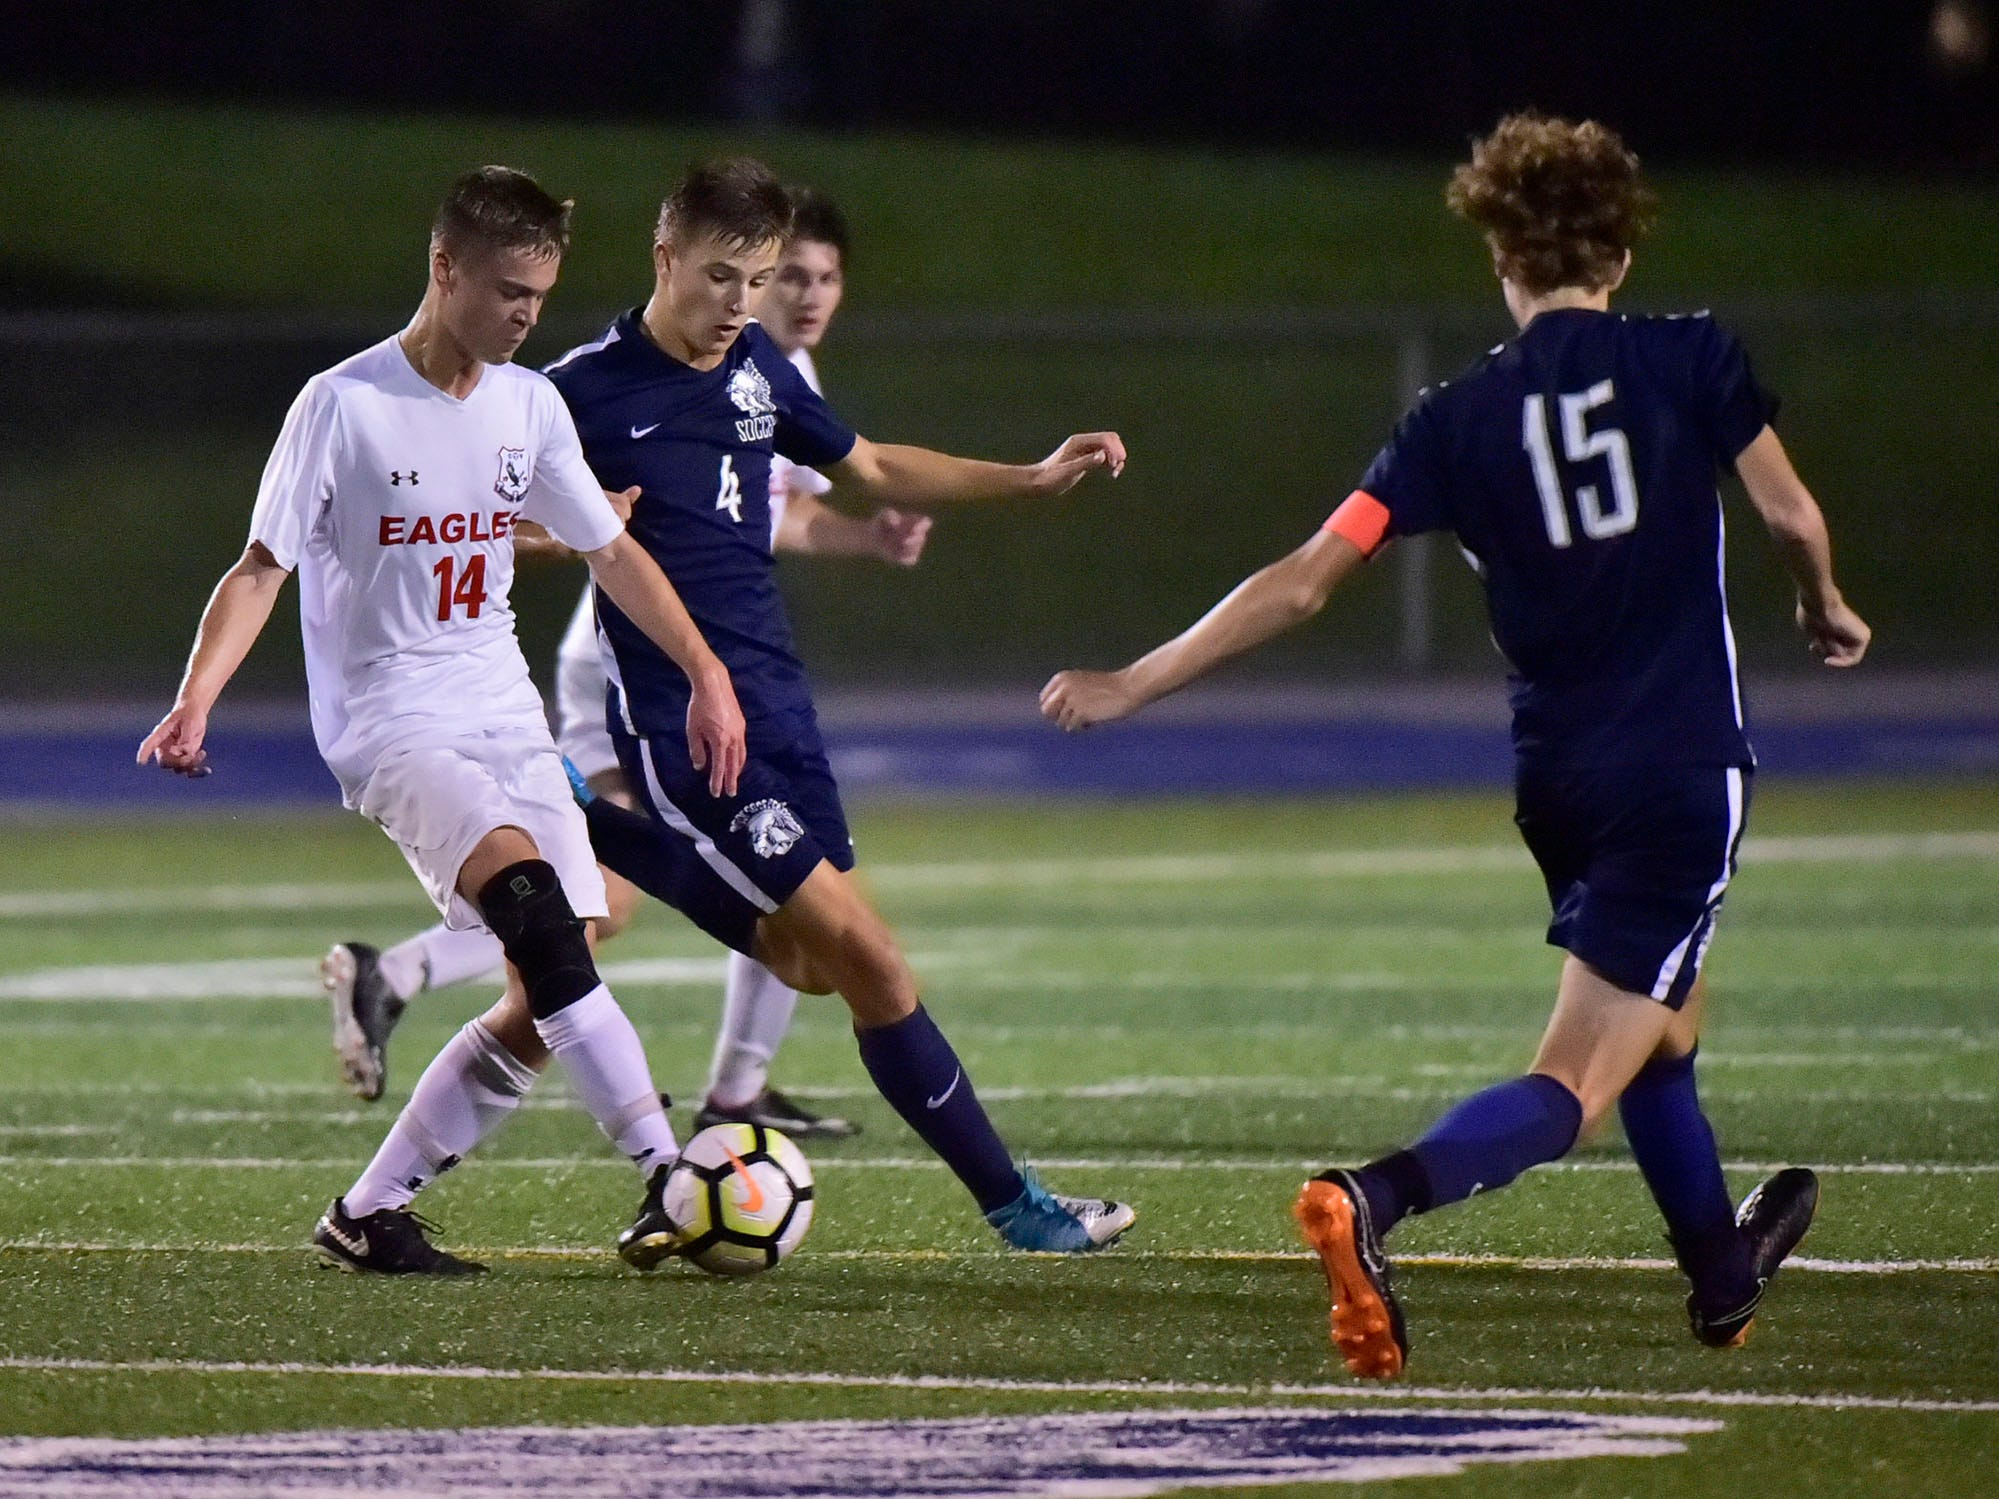 CV's Eric Leach (14) dribbles the ball past Luke Myers (4). Chambersburg hosted Cumberland Valley in PIAA soccer on Thursday, Oct. 4, 2018, but dropped a 2-1 match in double overtime.